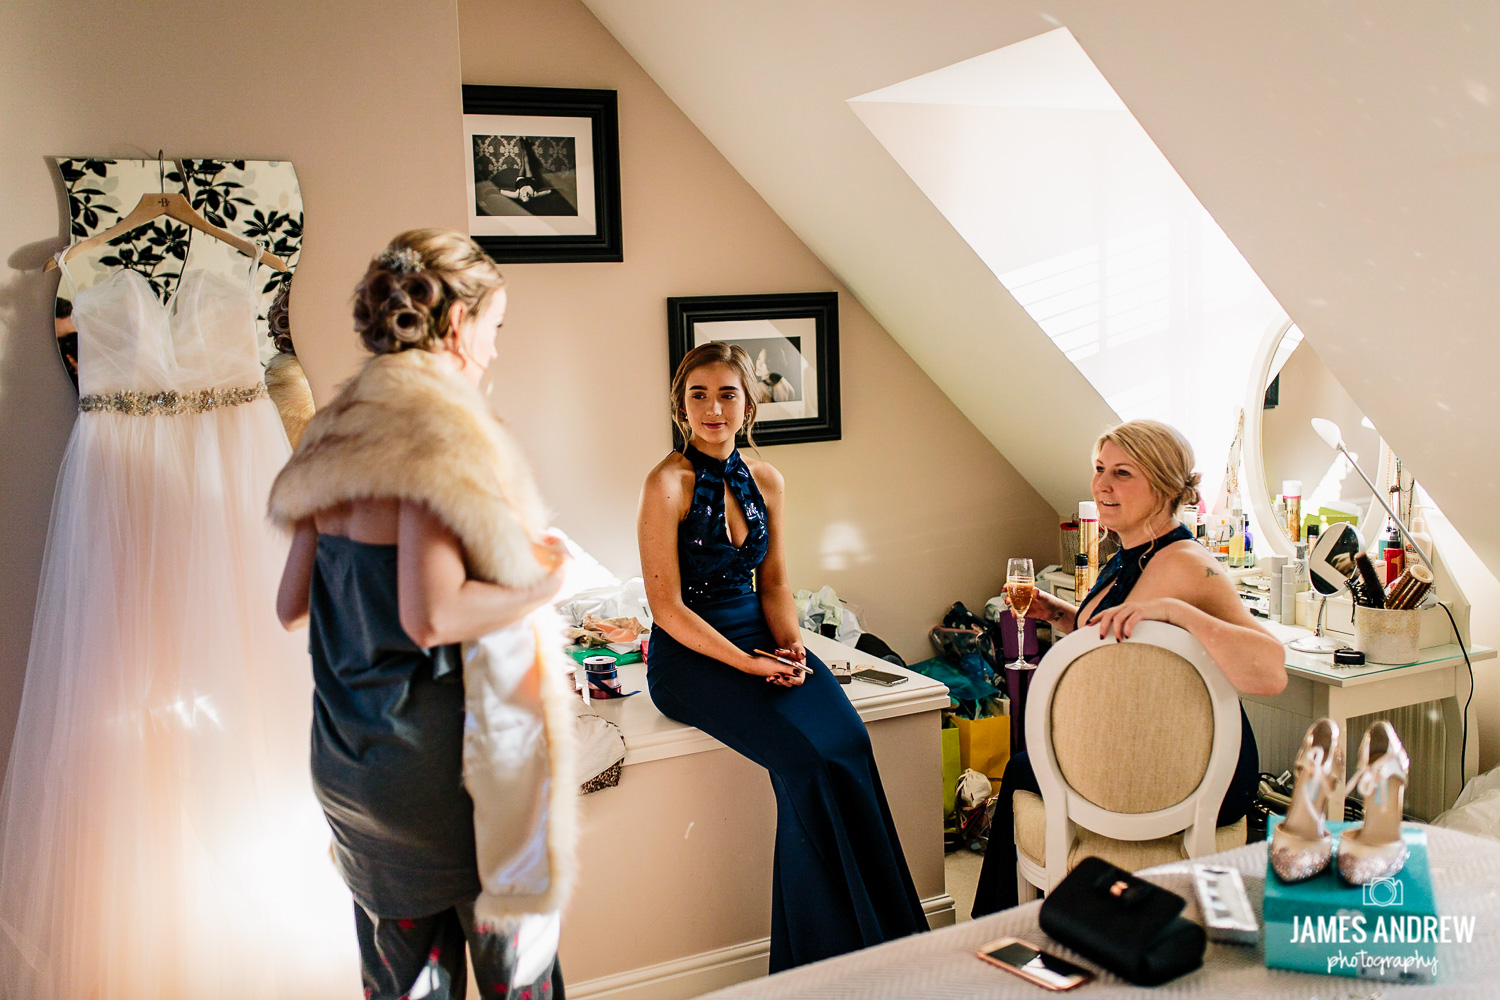 Bride and bridesmaids getting ready at home